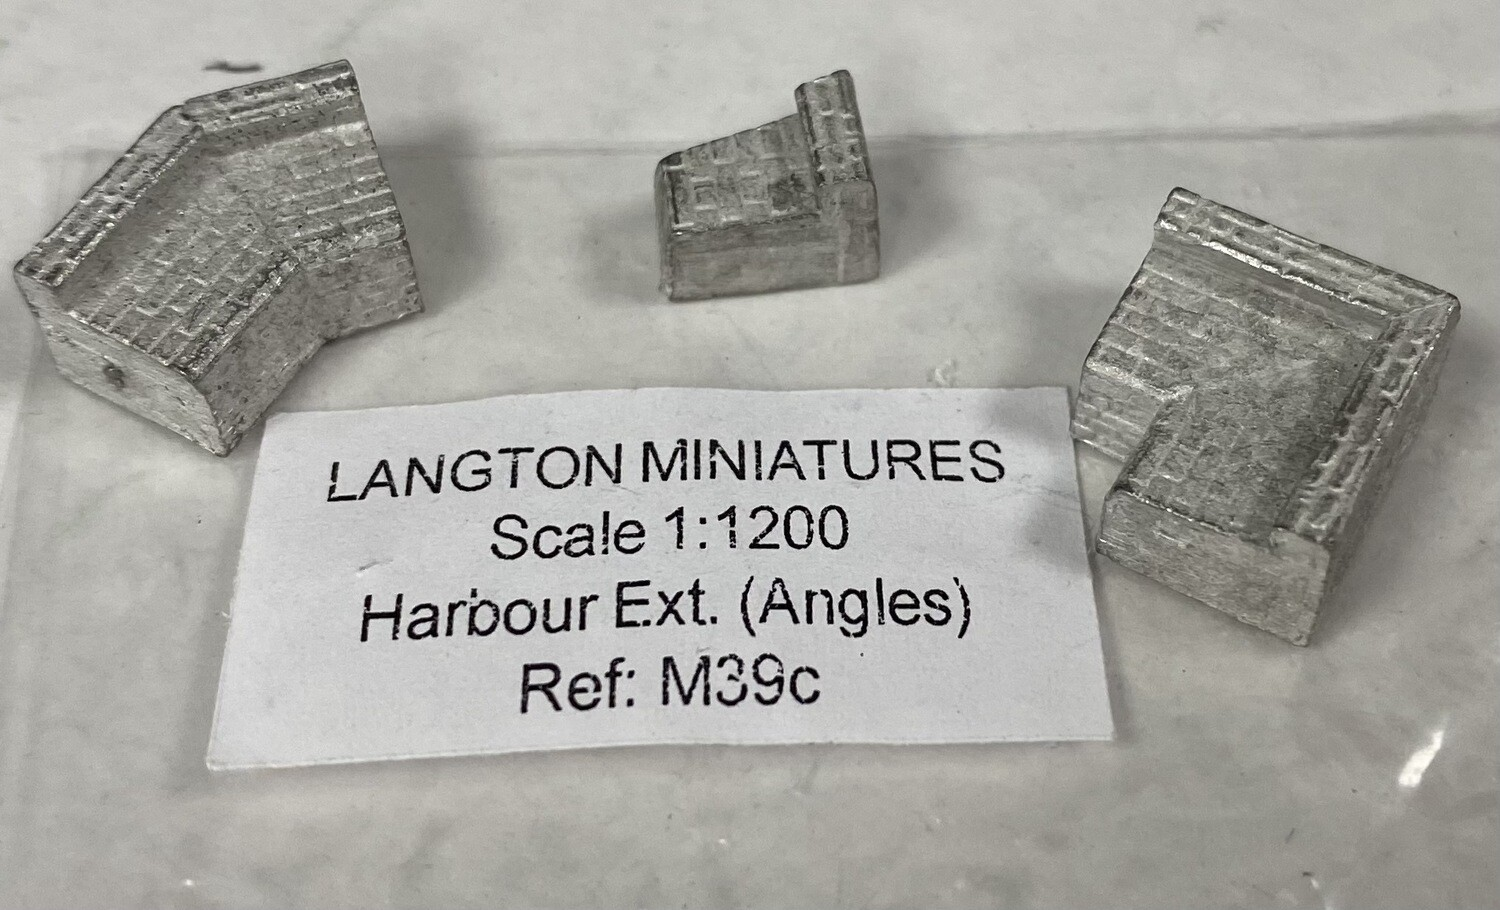 M39c Harbor extension (angles)